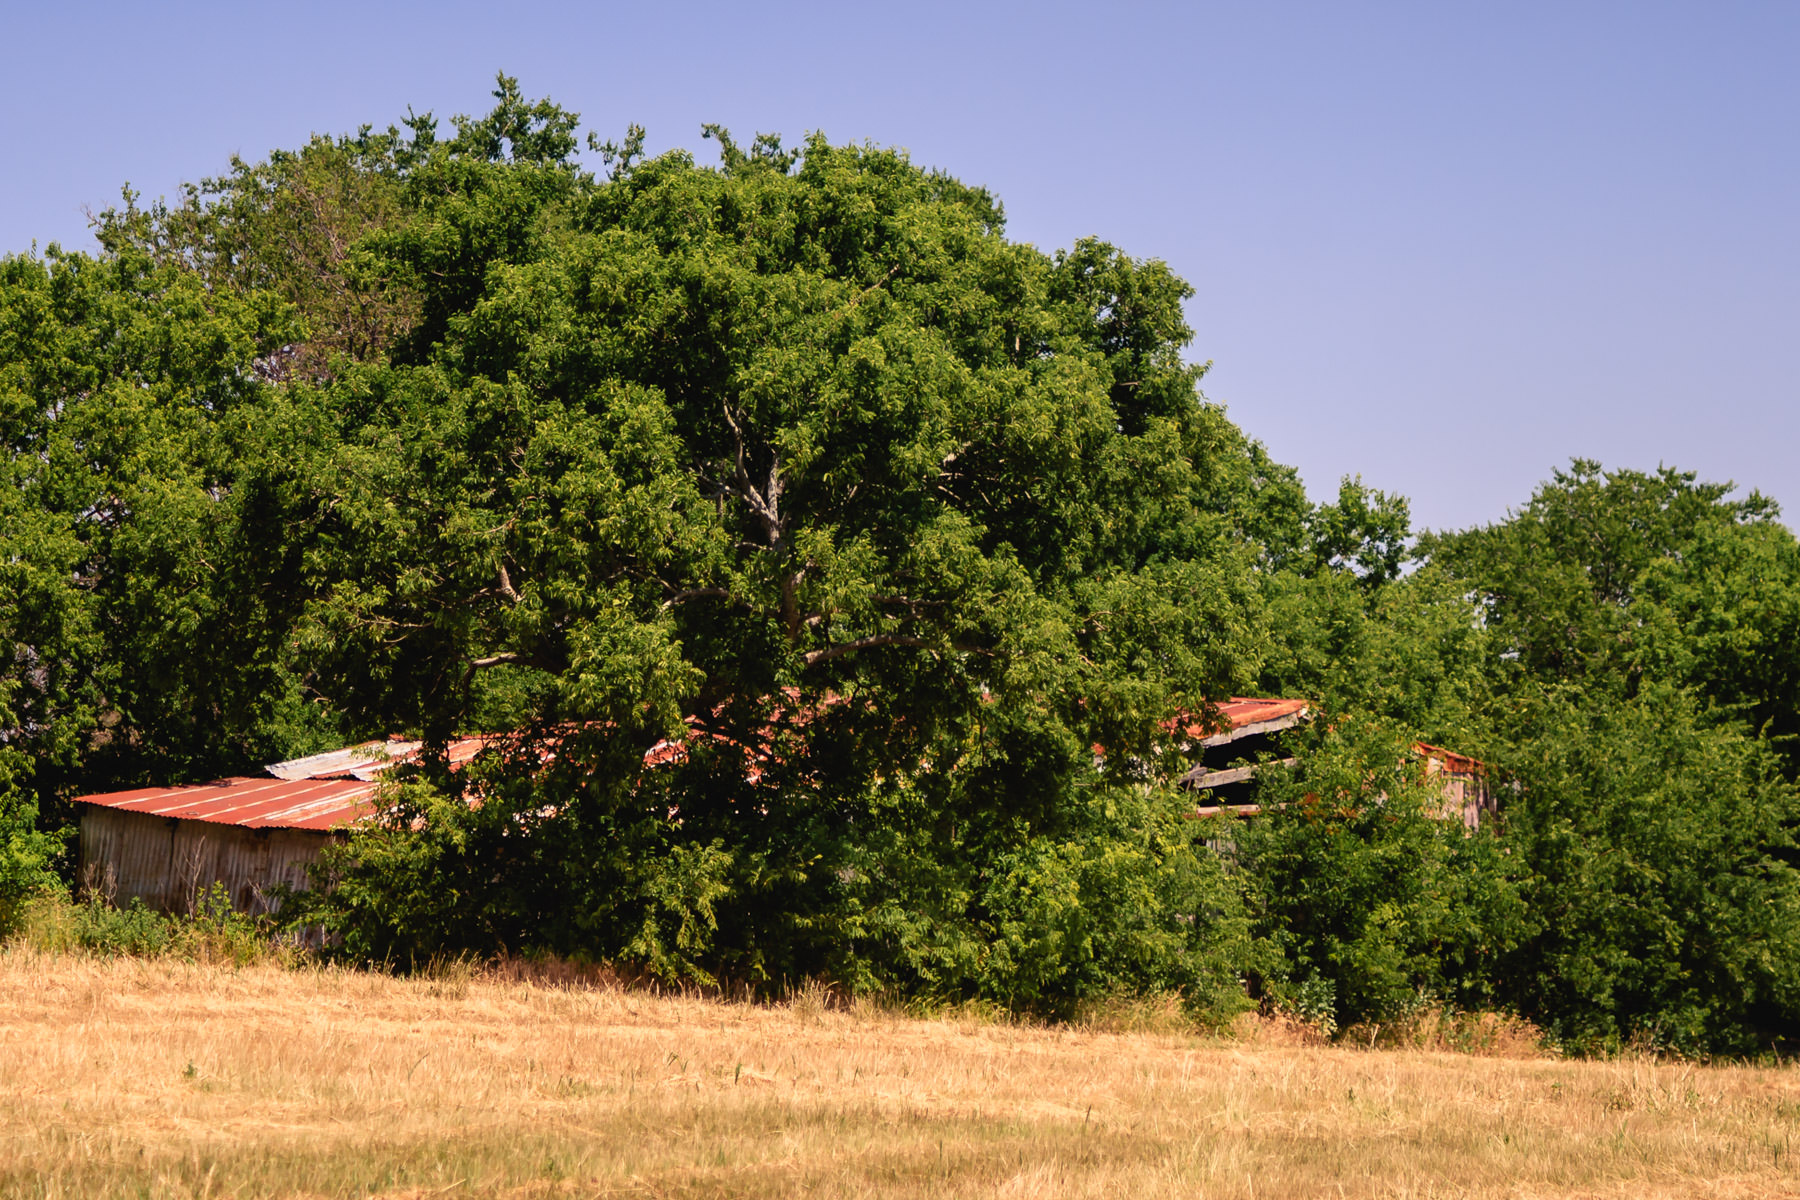 Somewhere north of Dallas, a barn is inexorably consumed by time and trees.